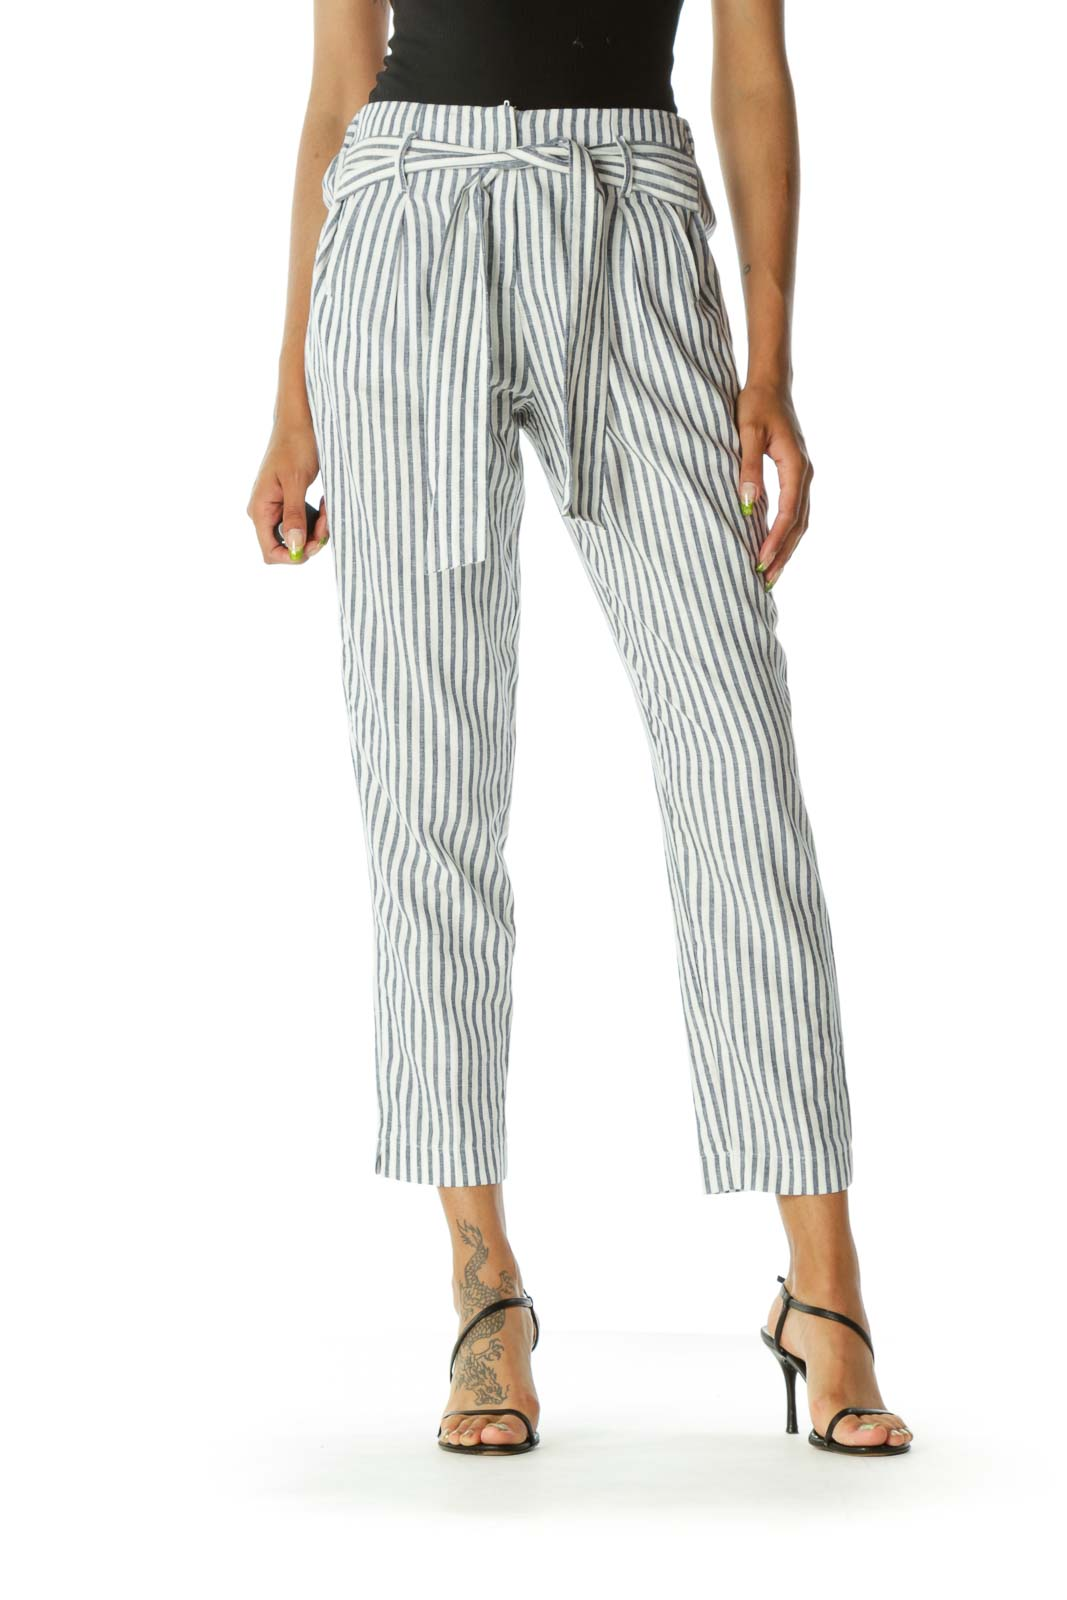 Blue Crean Striped Linen Pant